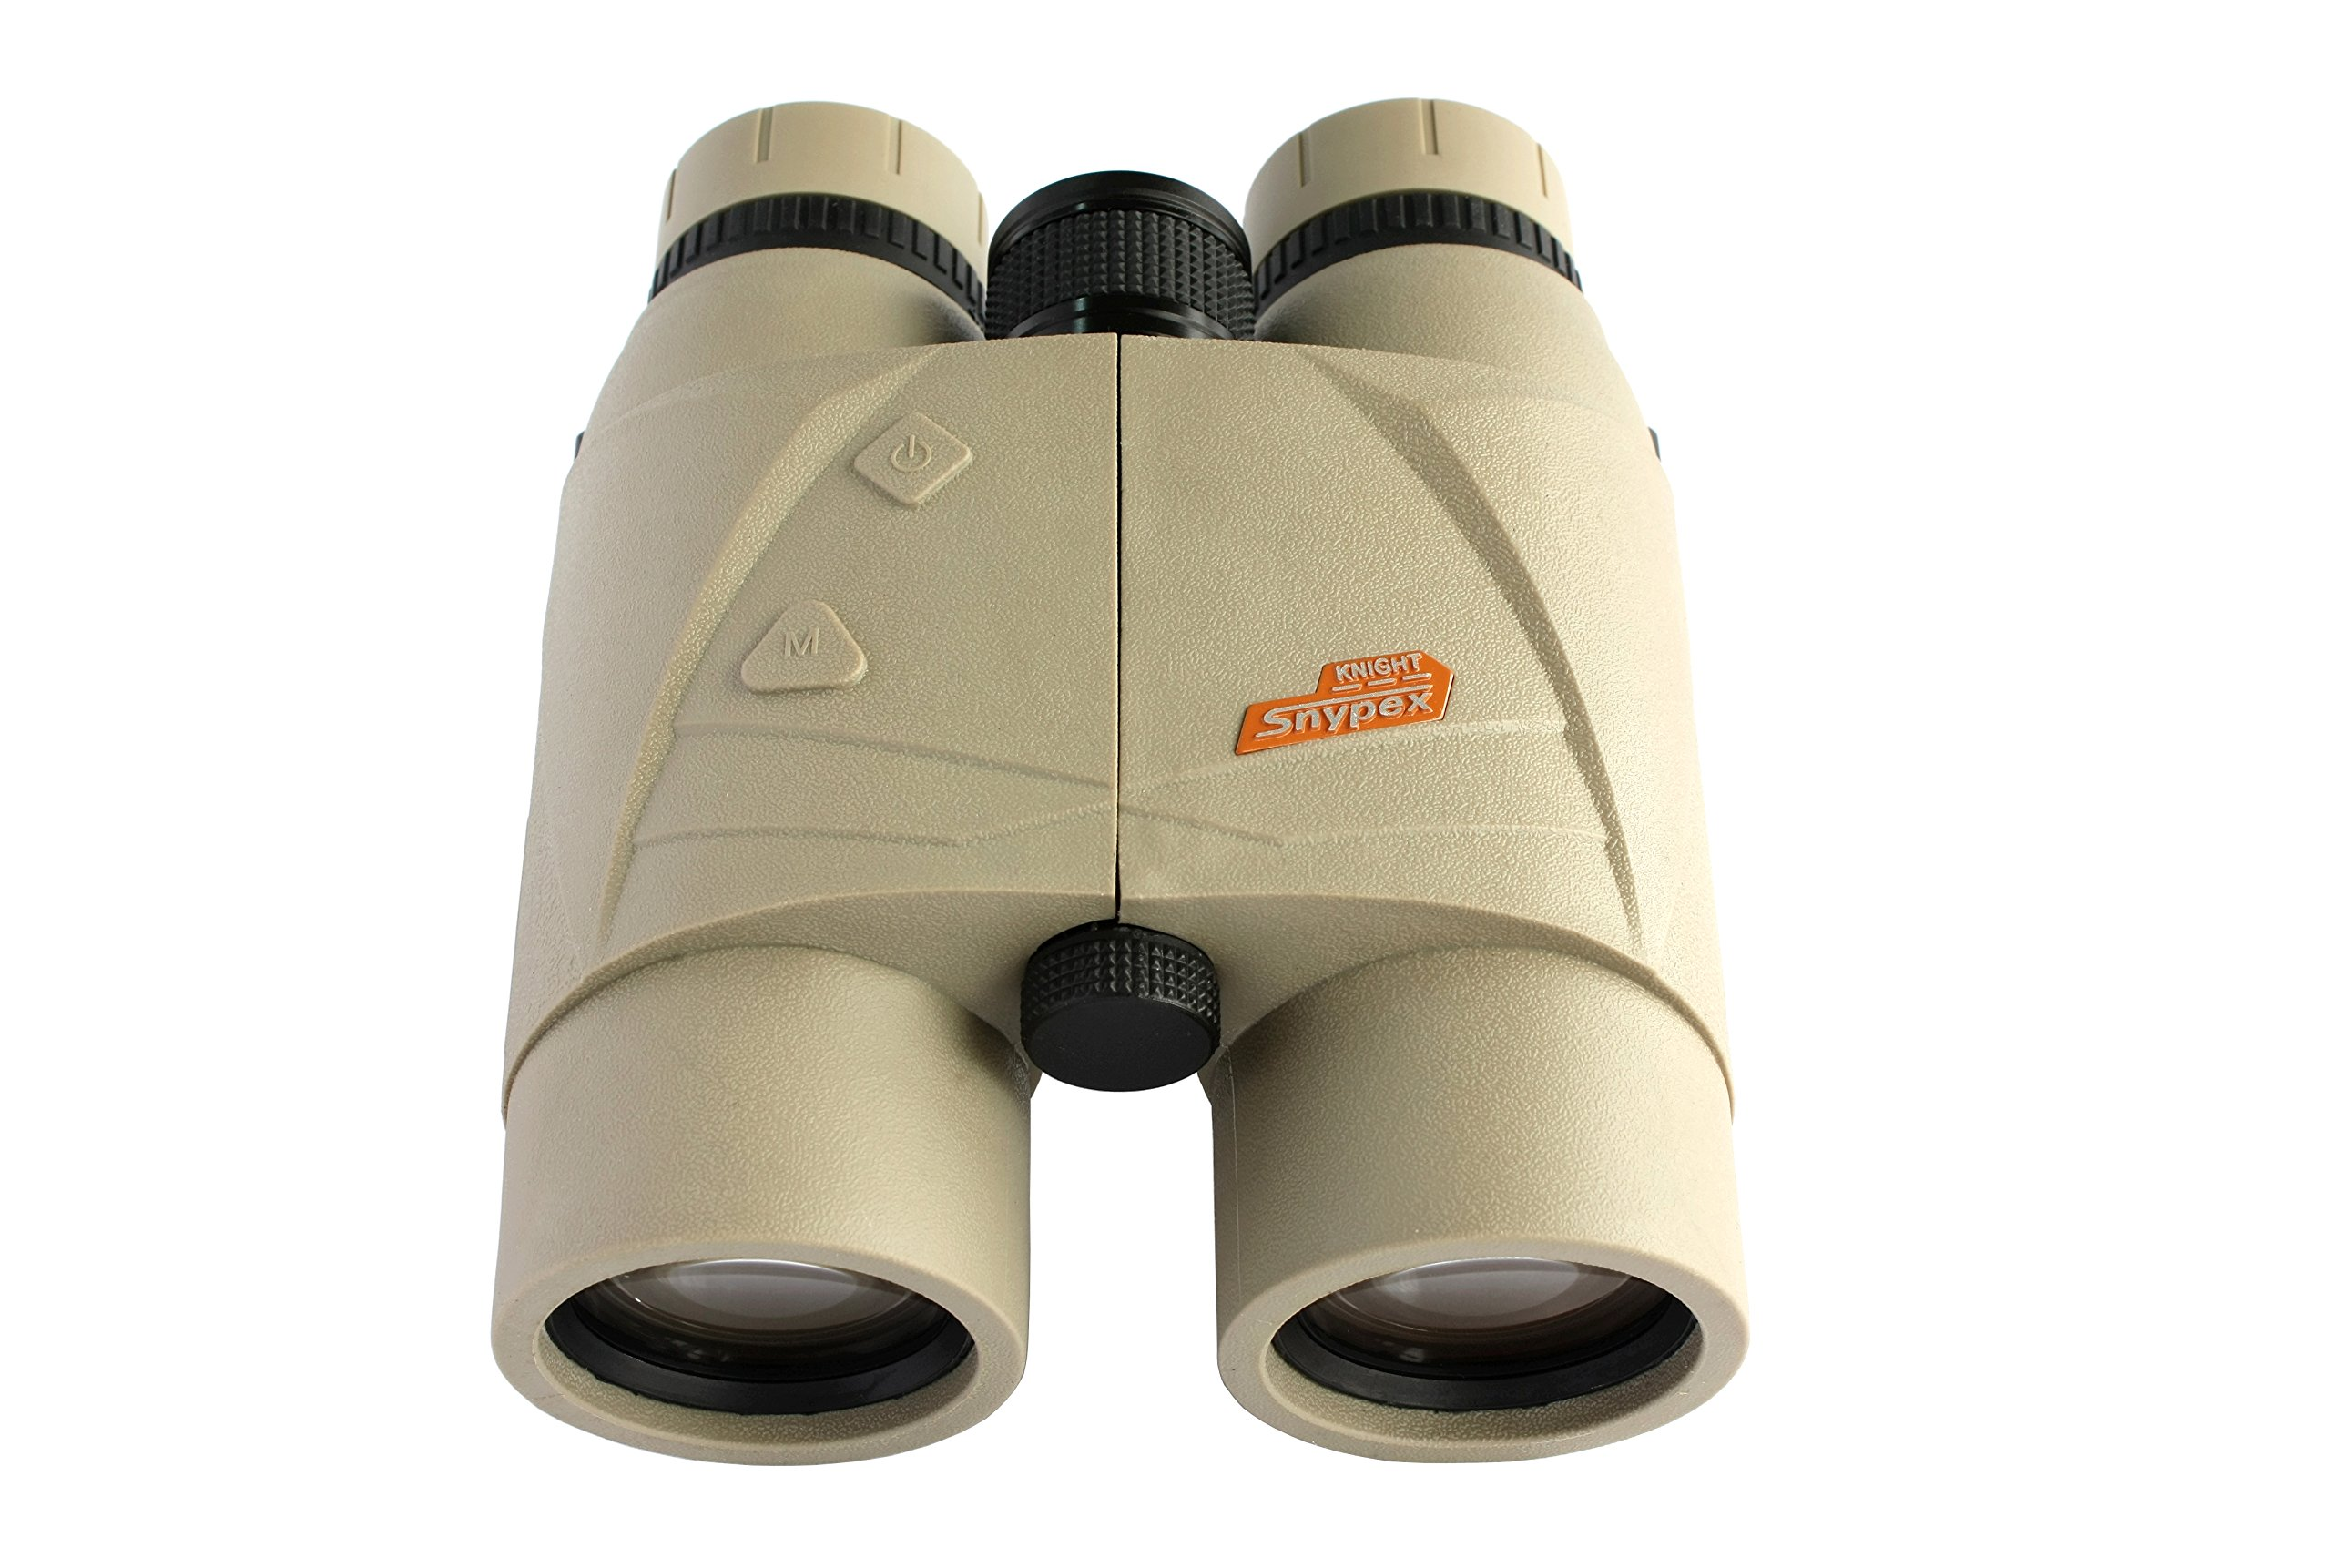 snypex Arm Yourself with The New Knight LRF1800 8x42 Precision Tactical 1.2 Miles Laser Rangefinder Binoculars, Crime Fighting Eyes for Cops by snypex